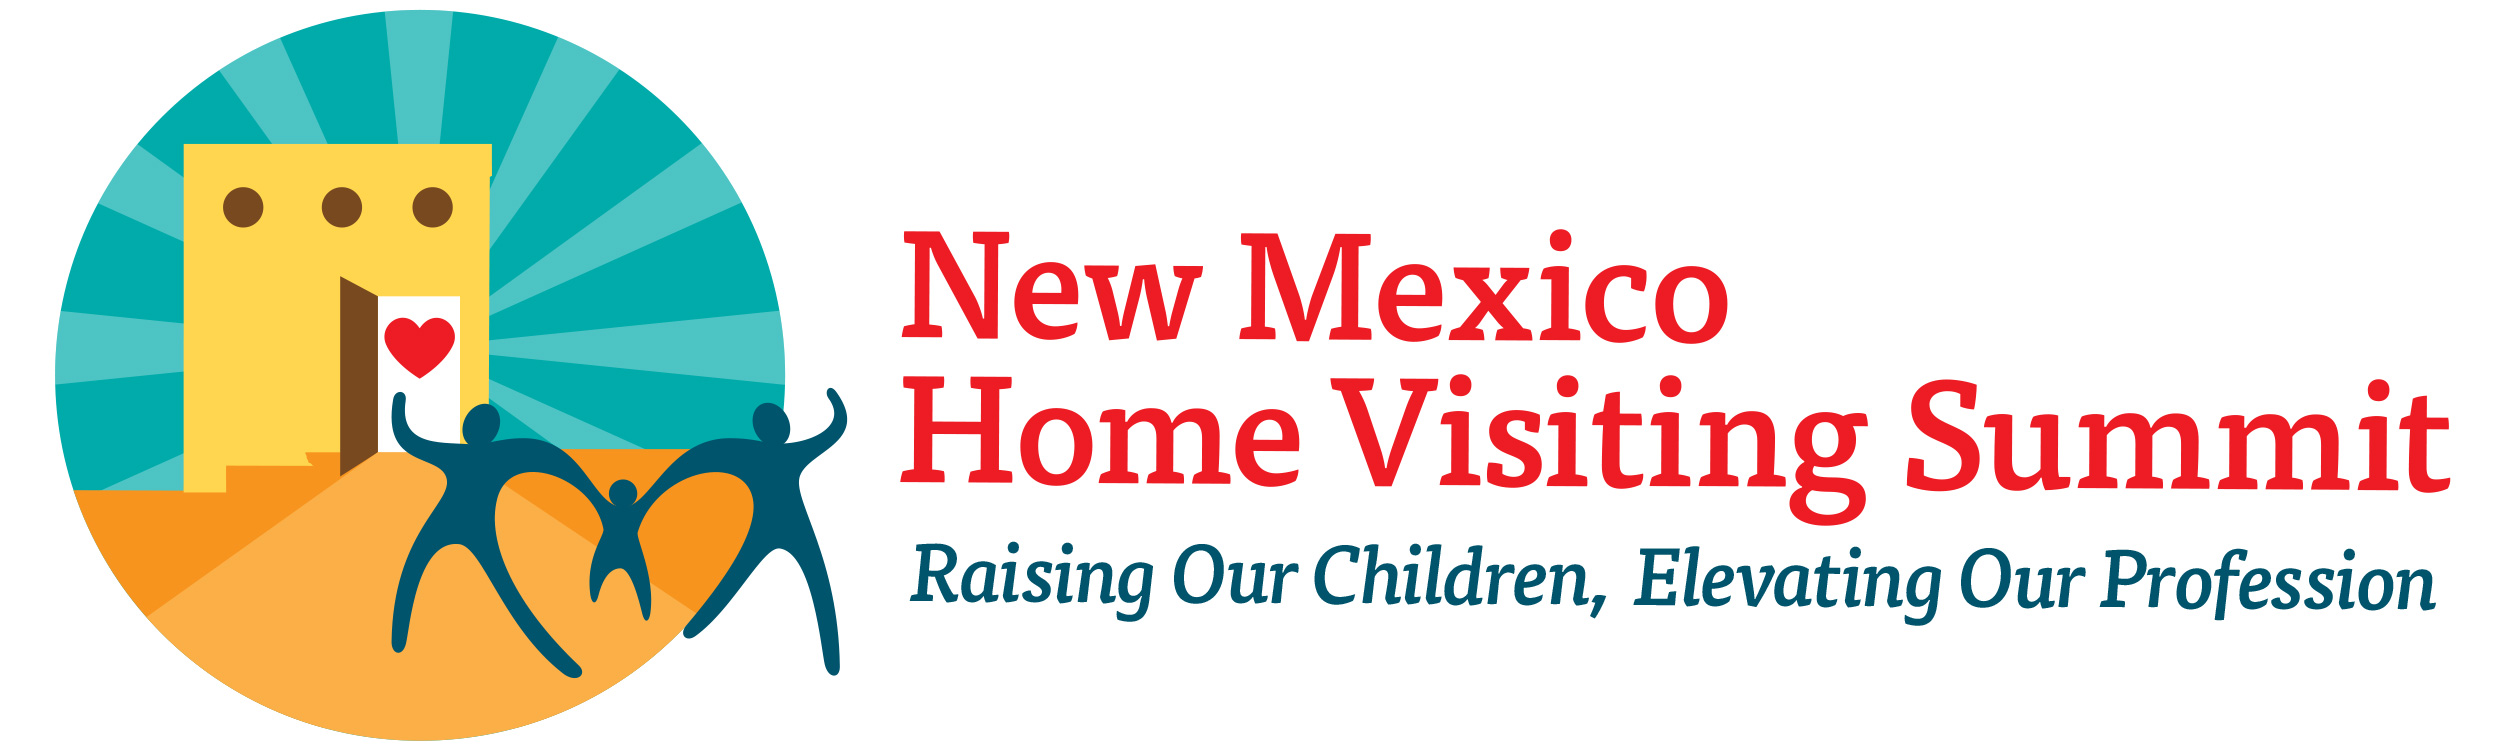 new mexico home visiting summit early childhood